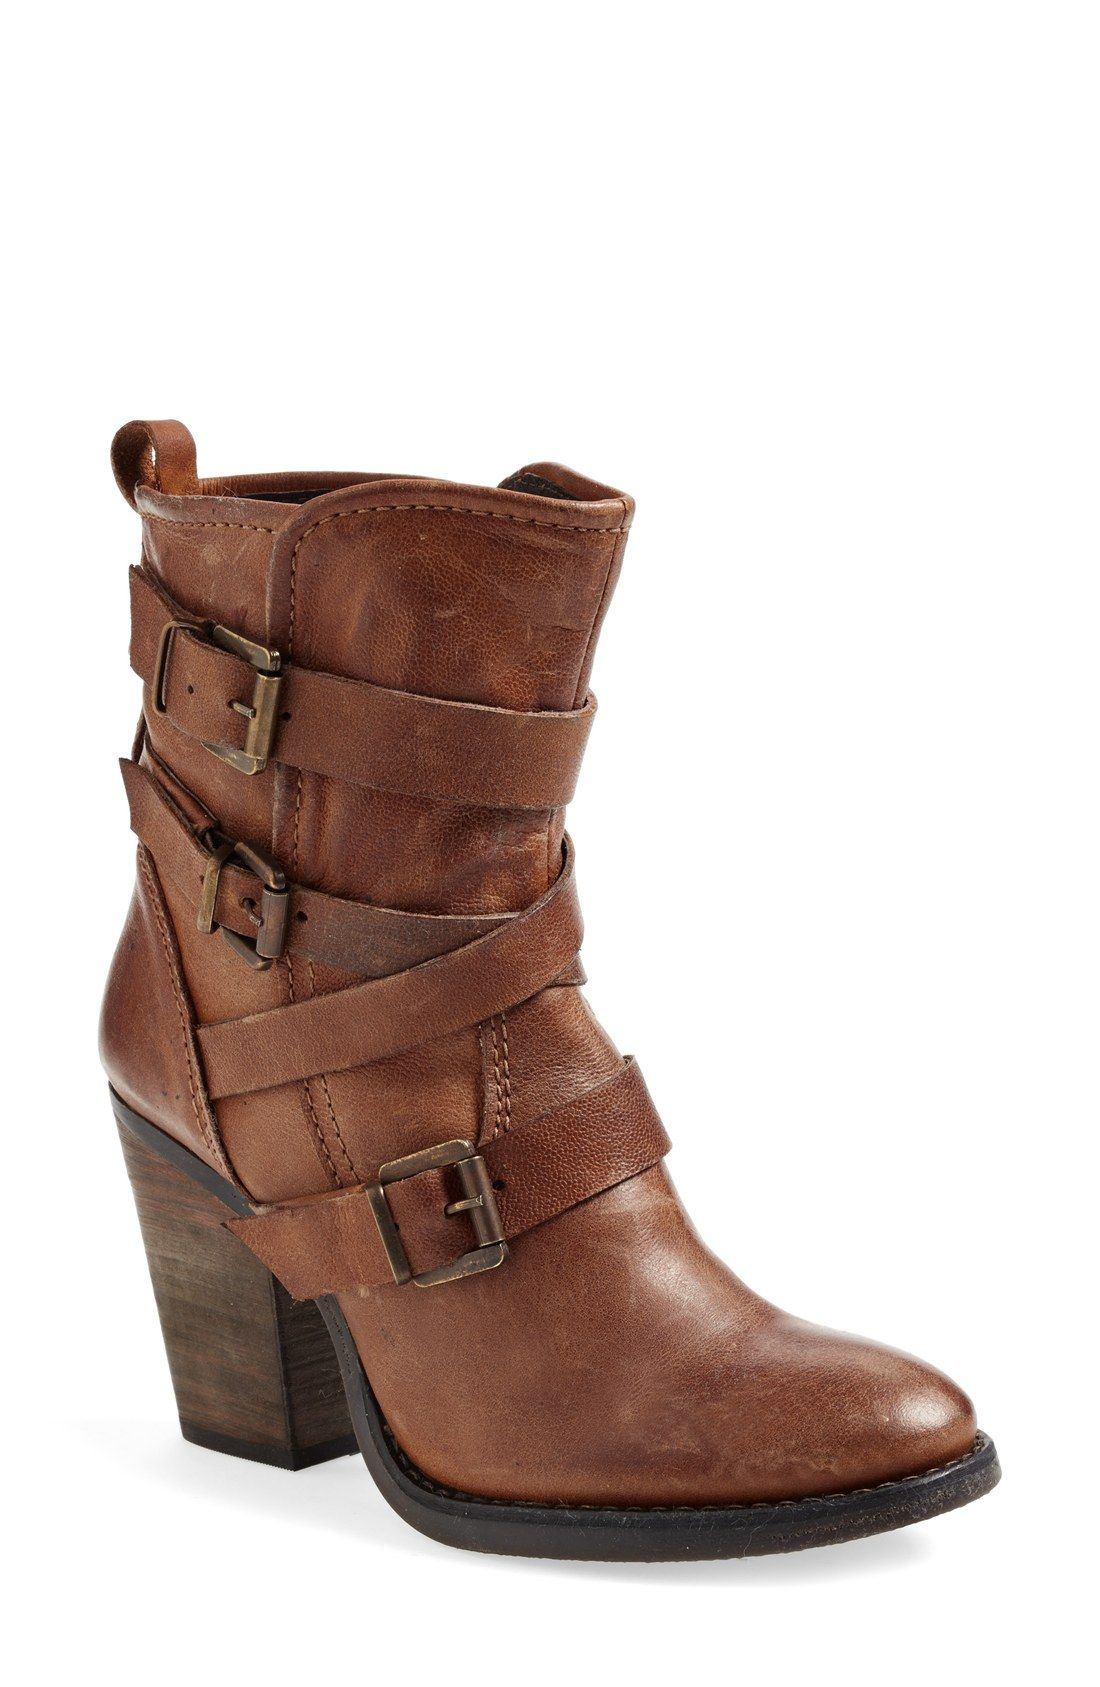 cc74e50e76b Gorgeous Steve Madden belted boots for winter.